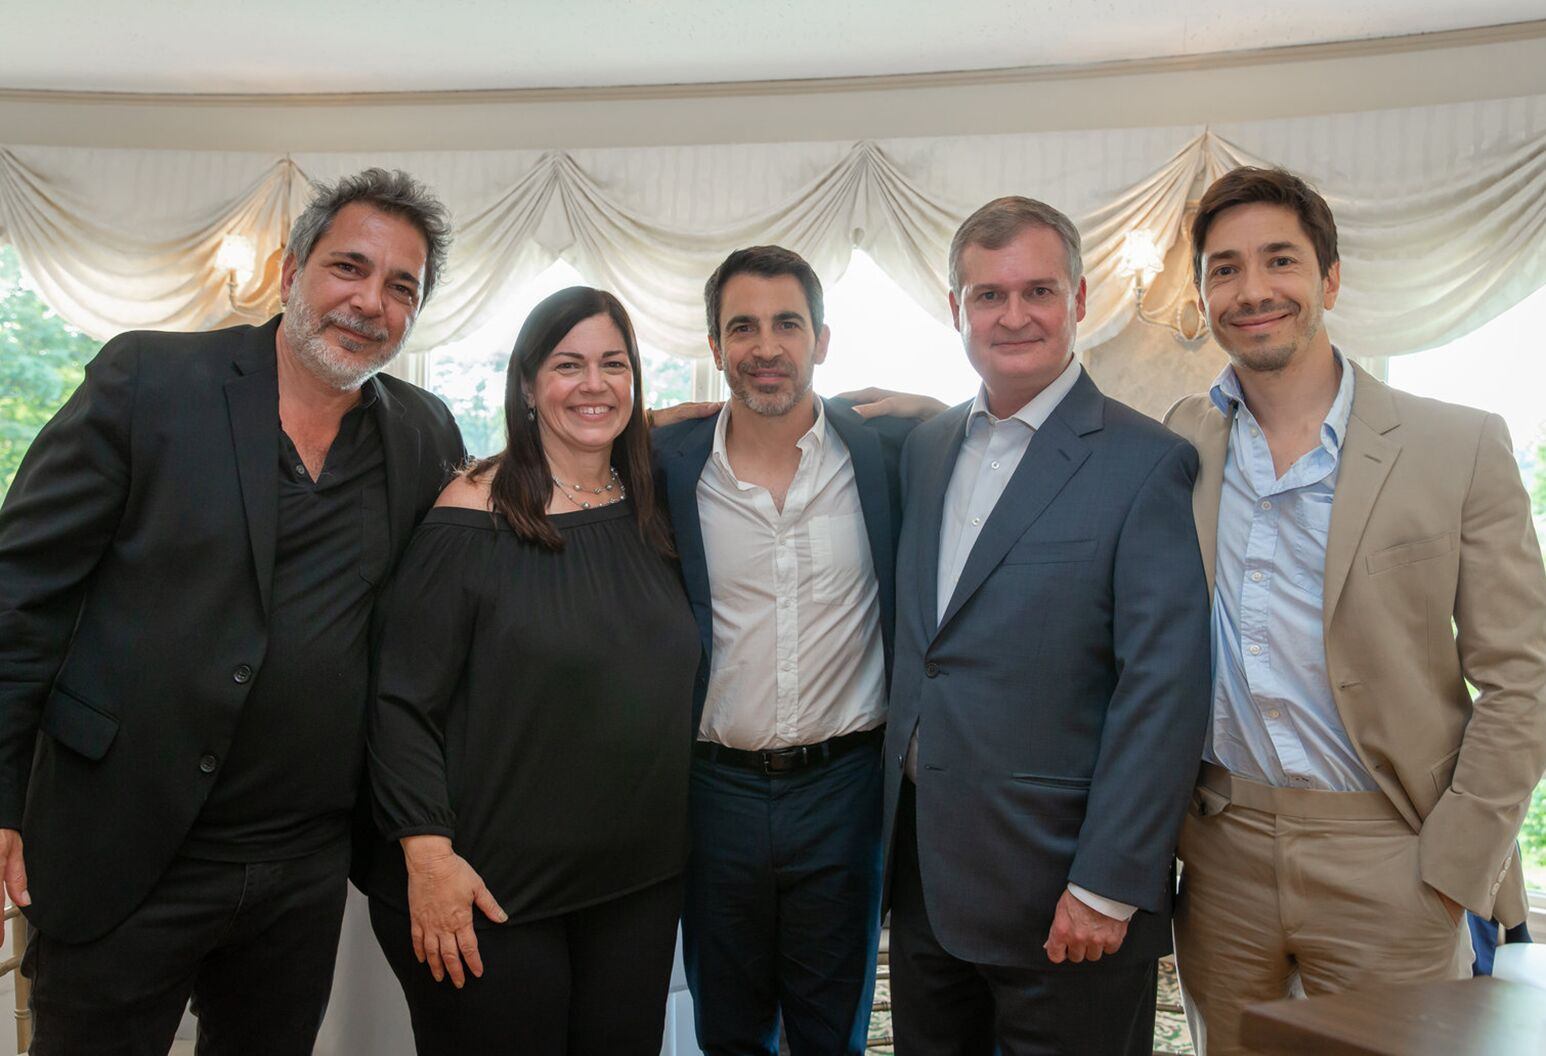 From left: Steven Messina, Marybeth Messina Seus, Chris Messina, Robert Kerr, MD, PhD and Justin Long at the Philip Messina Memorial Golf Tournament.